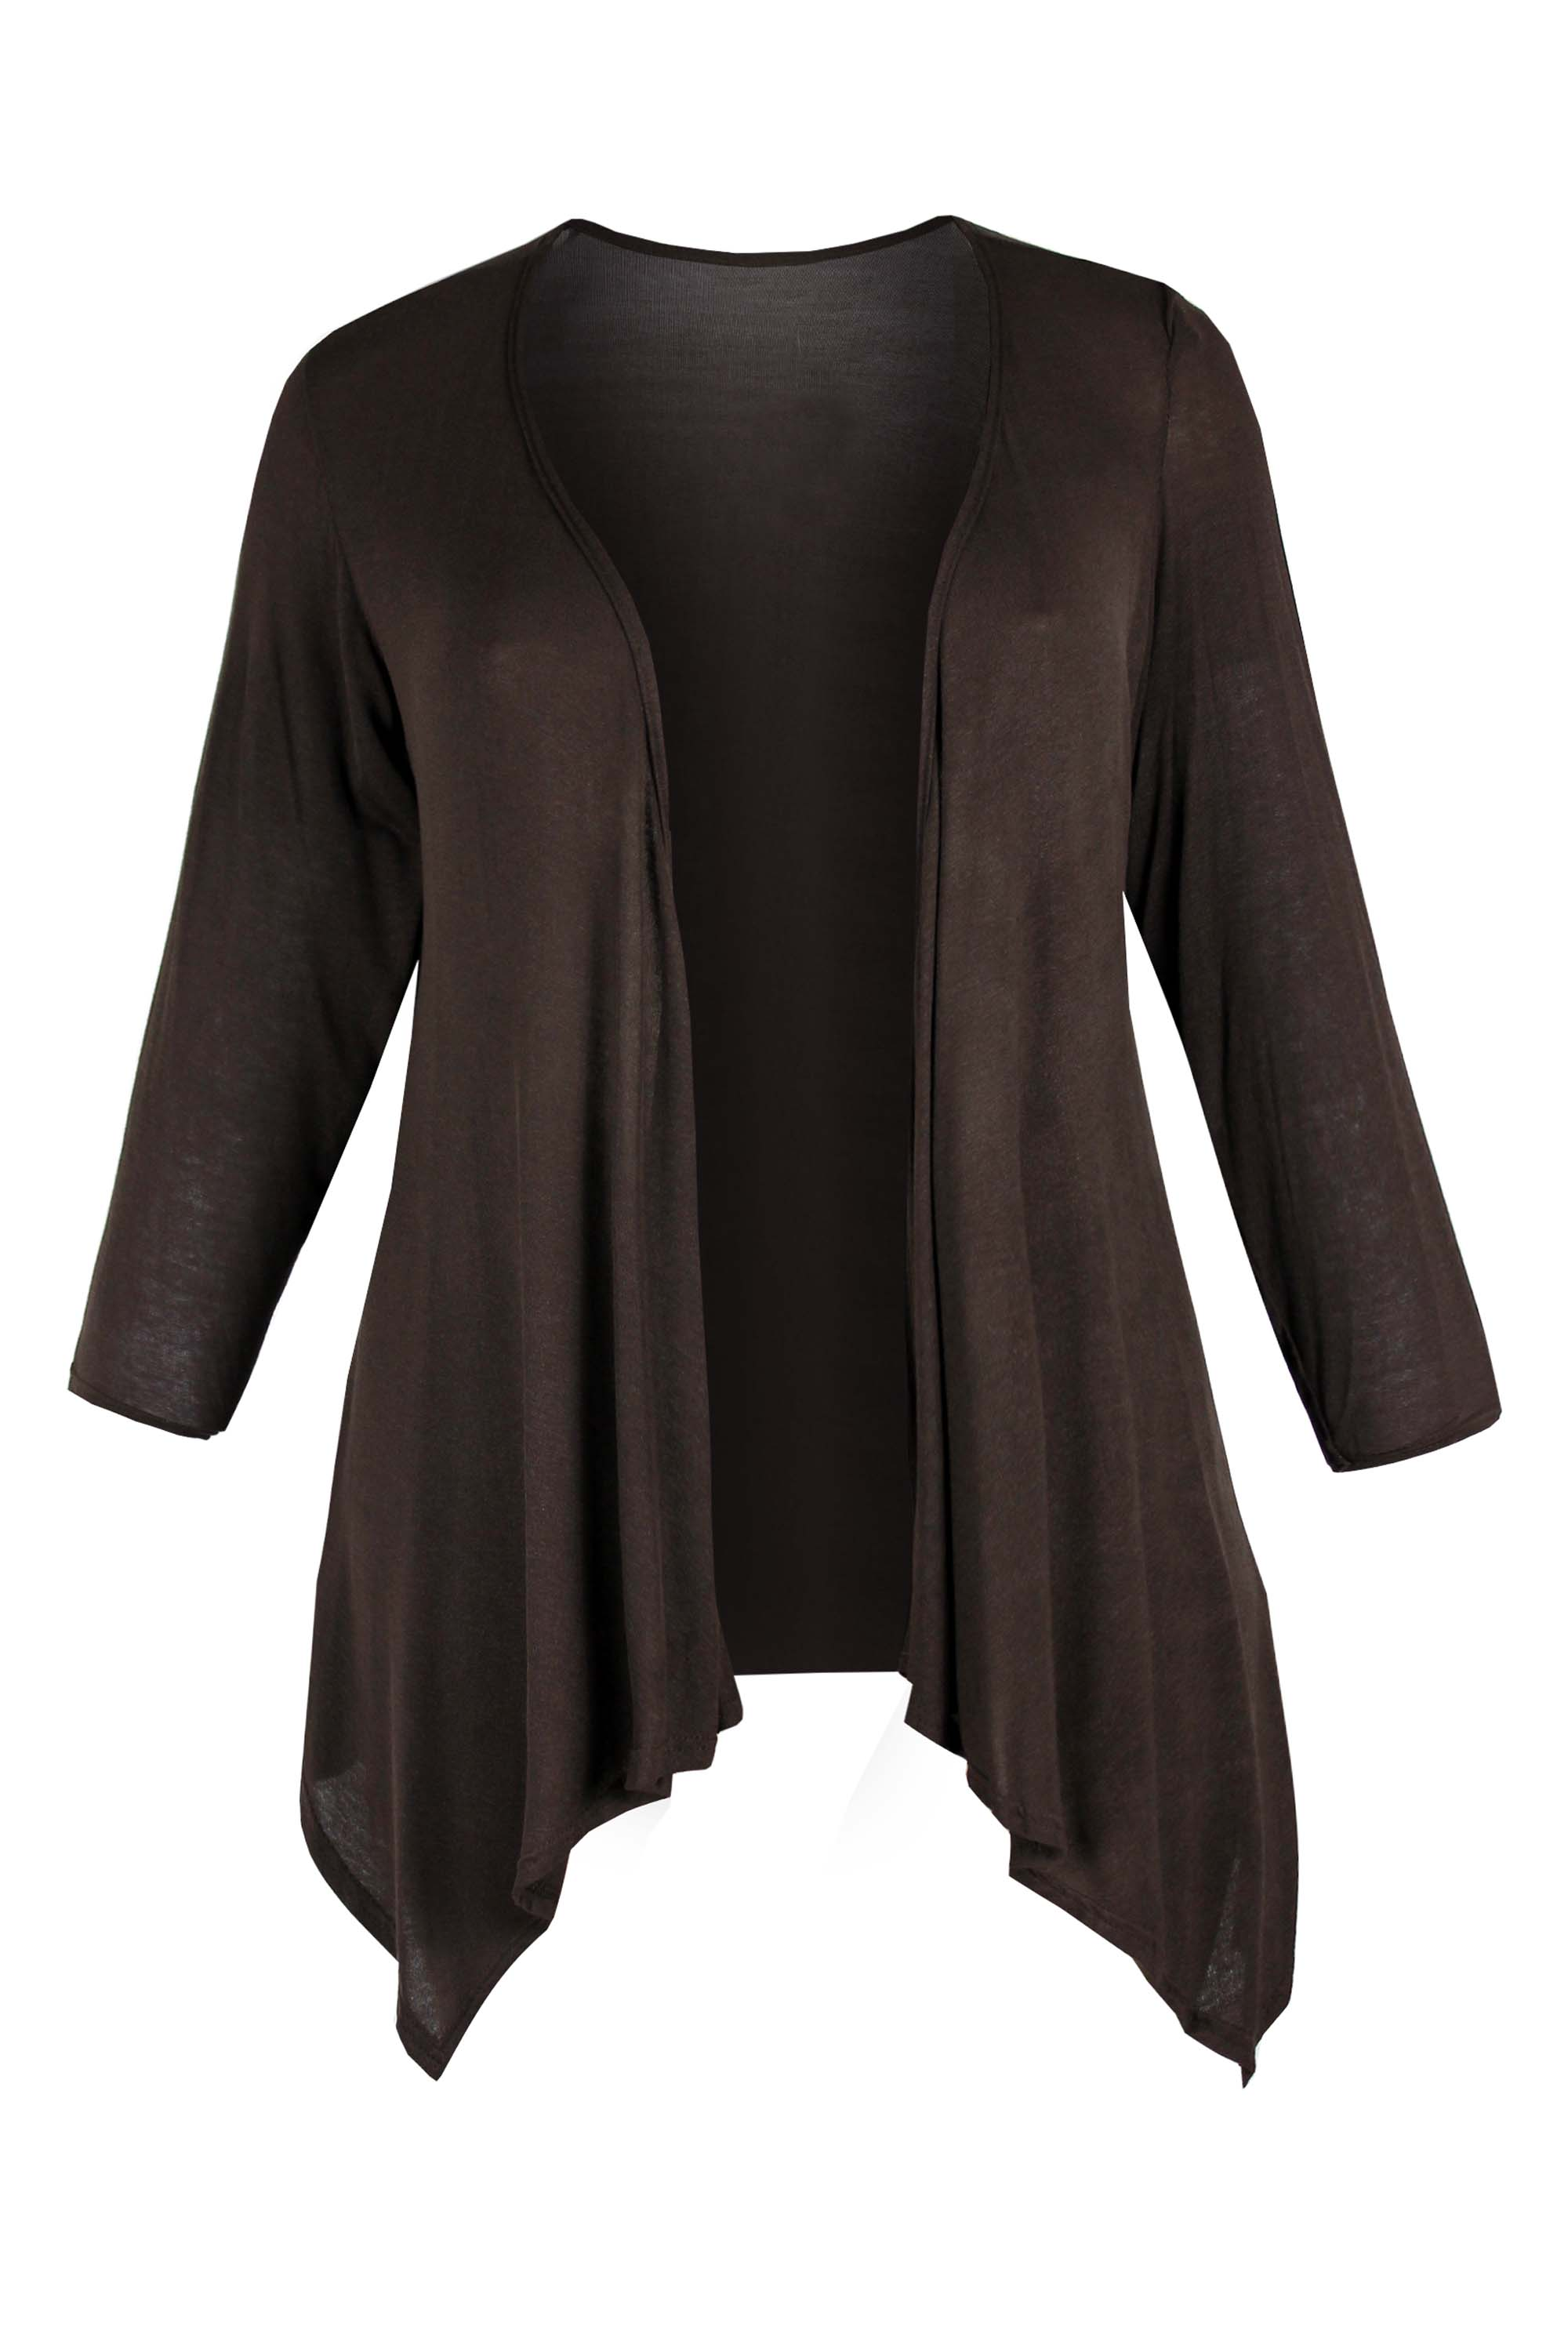 Free shipping and returns on Women's Black Sweaters at dvlnpxiuf.ga